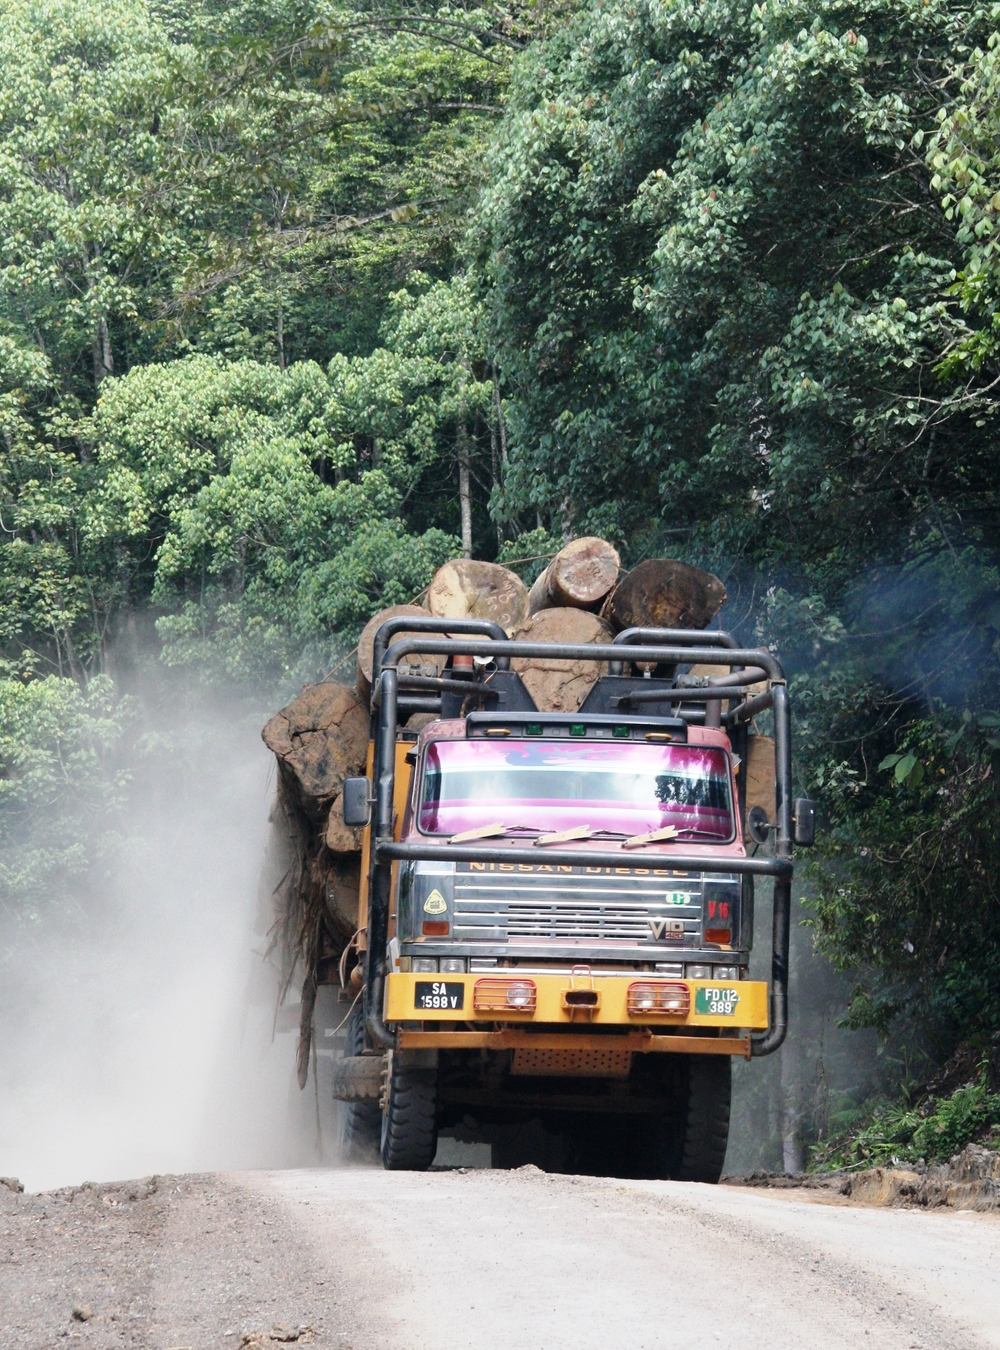 Roads can bring big environmental problems--a logging truck in Borneo (photo by Rhett Butler).